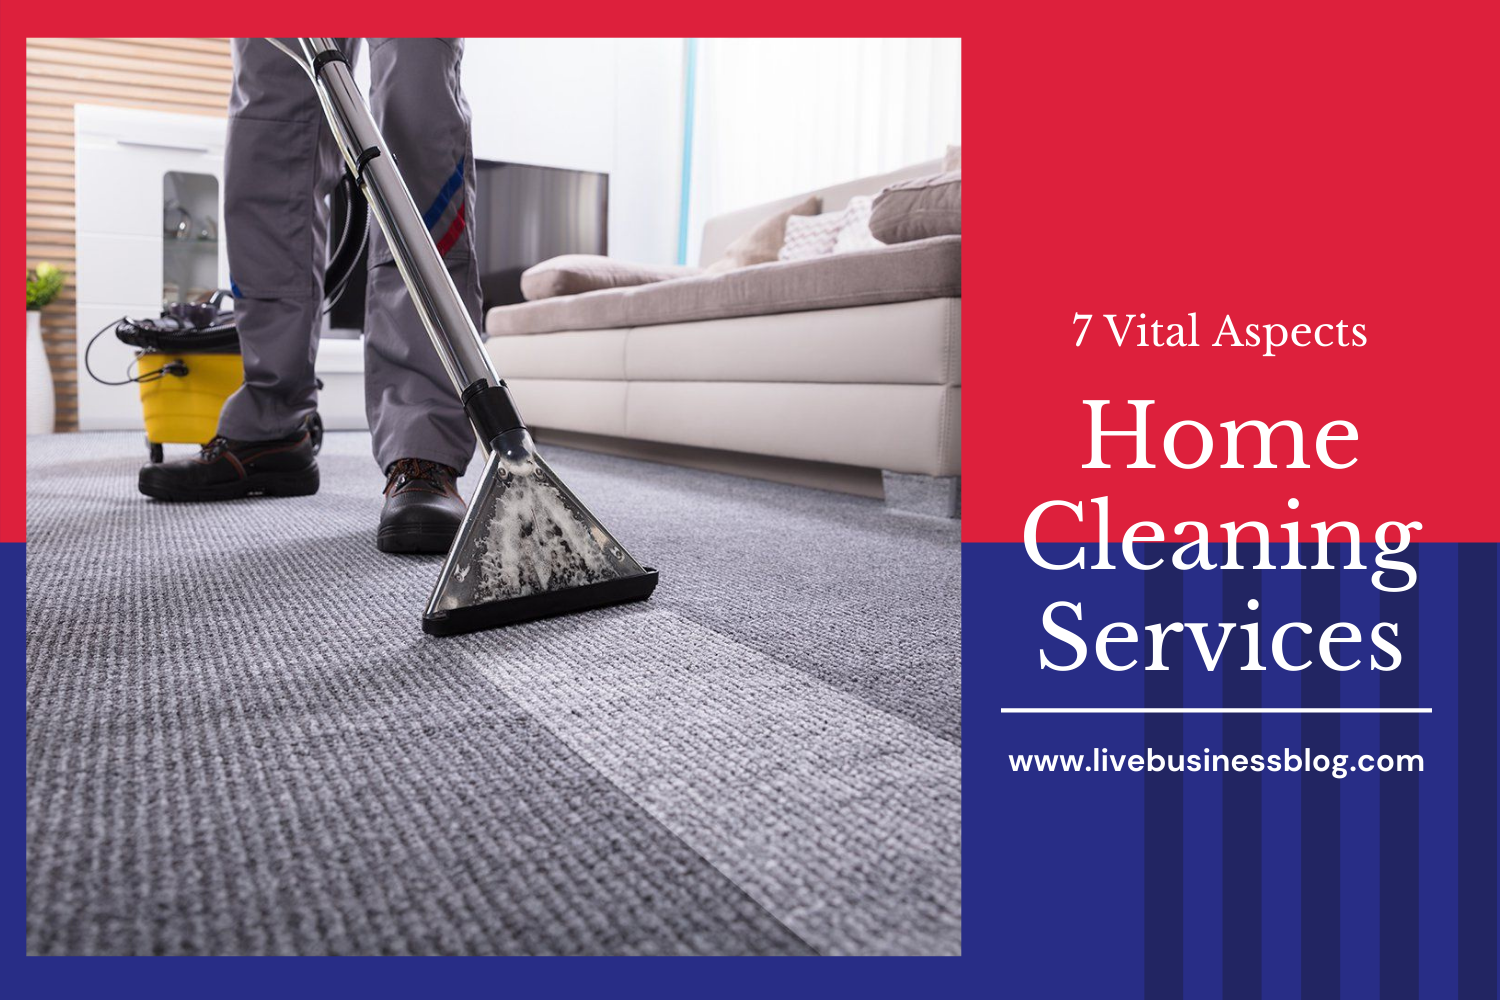 7 Vital Aspects the best Home Cleaning Services should cover